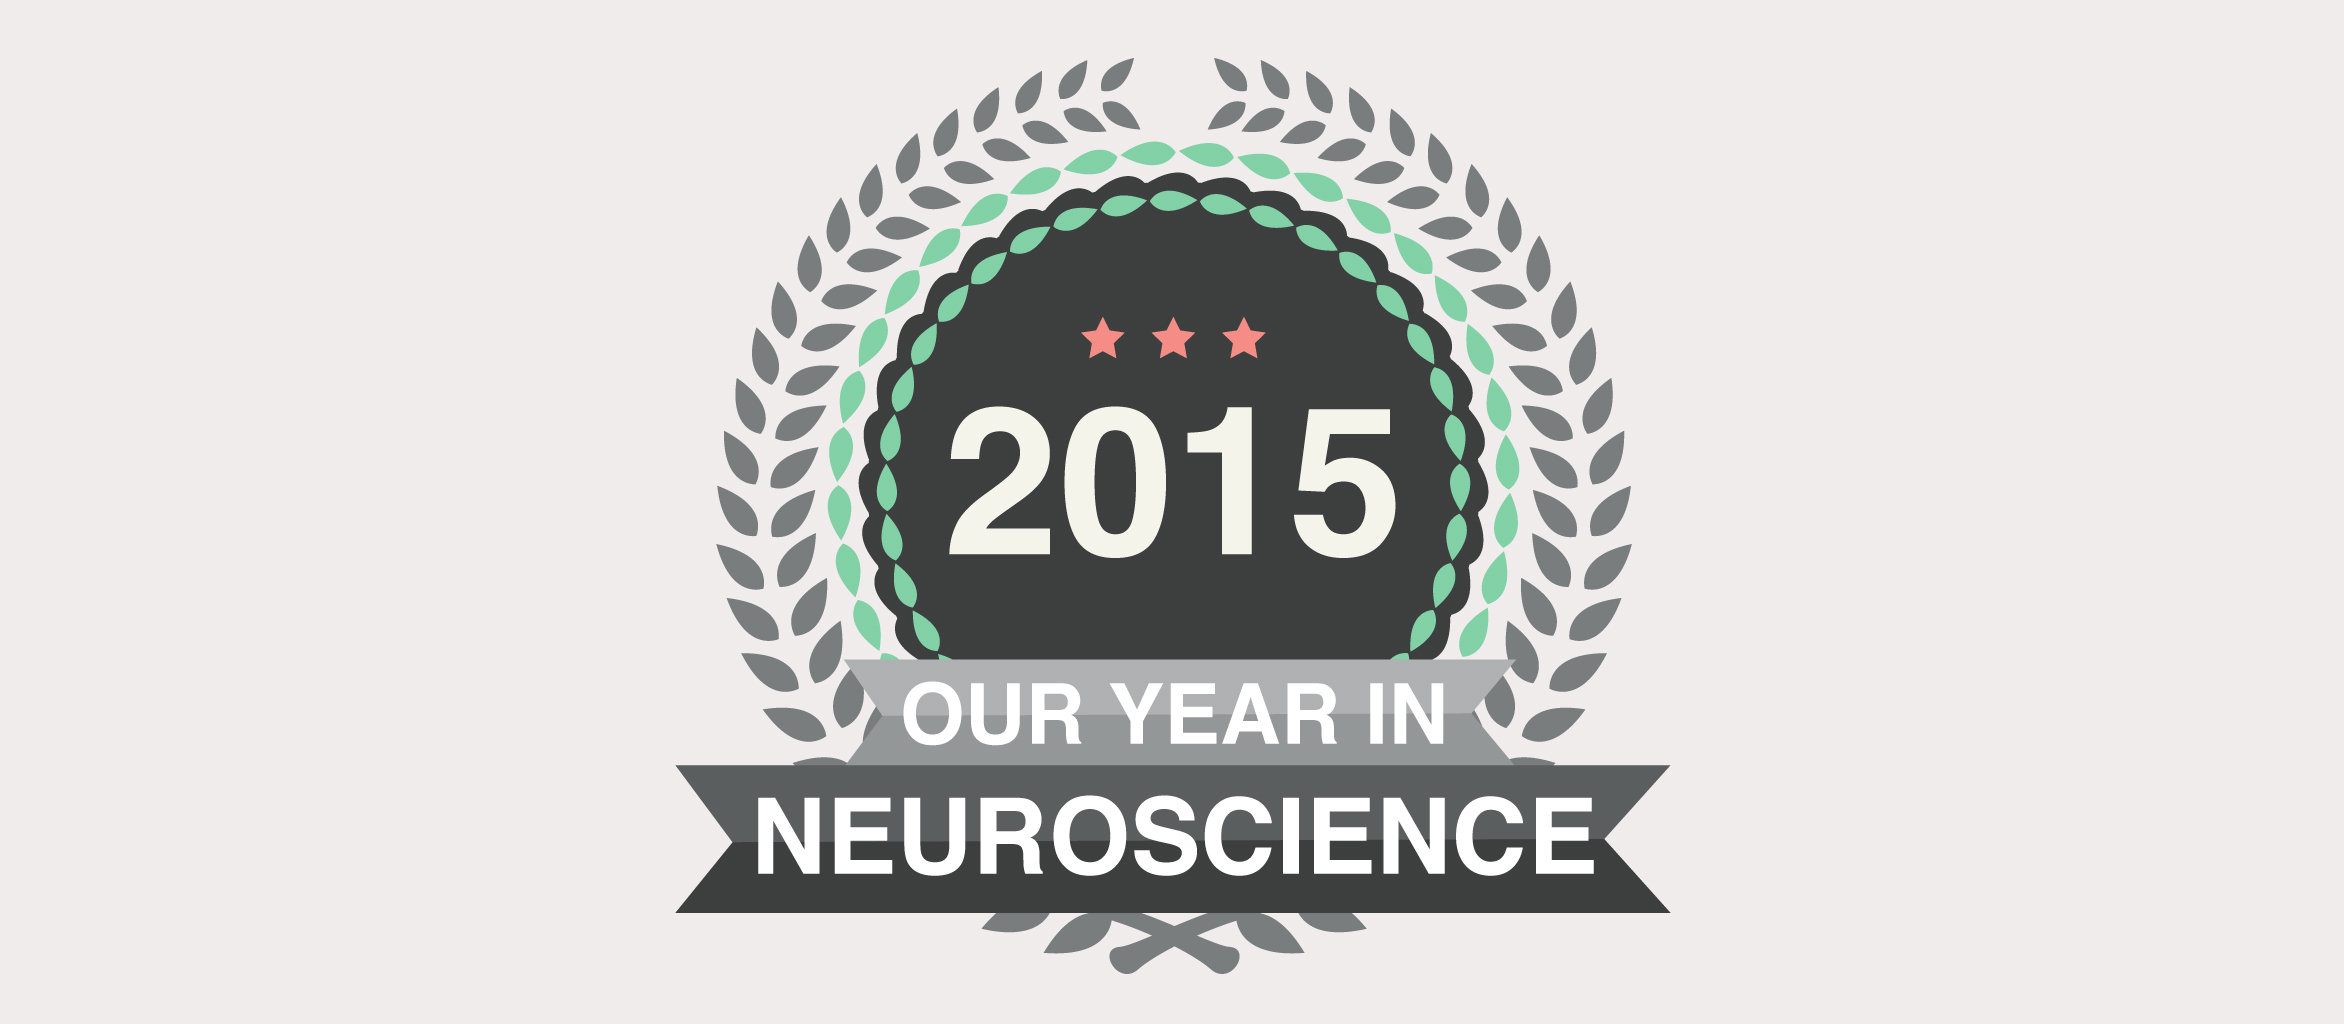 Our Year in Neuroscience